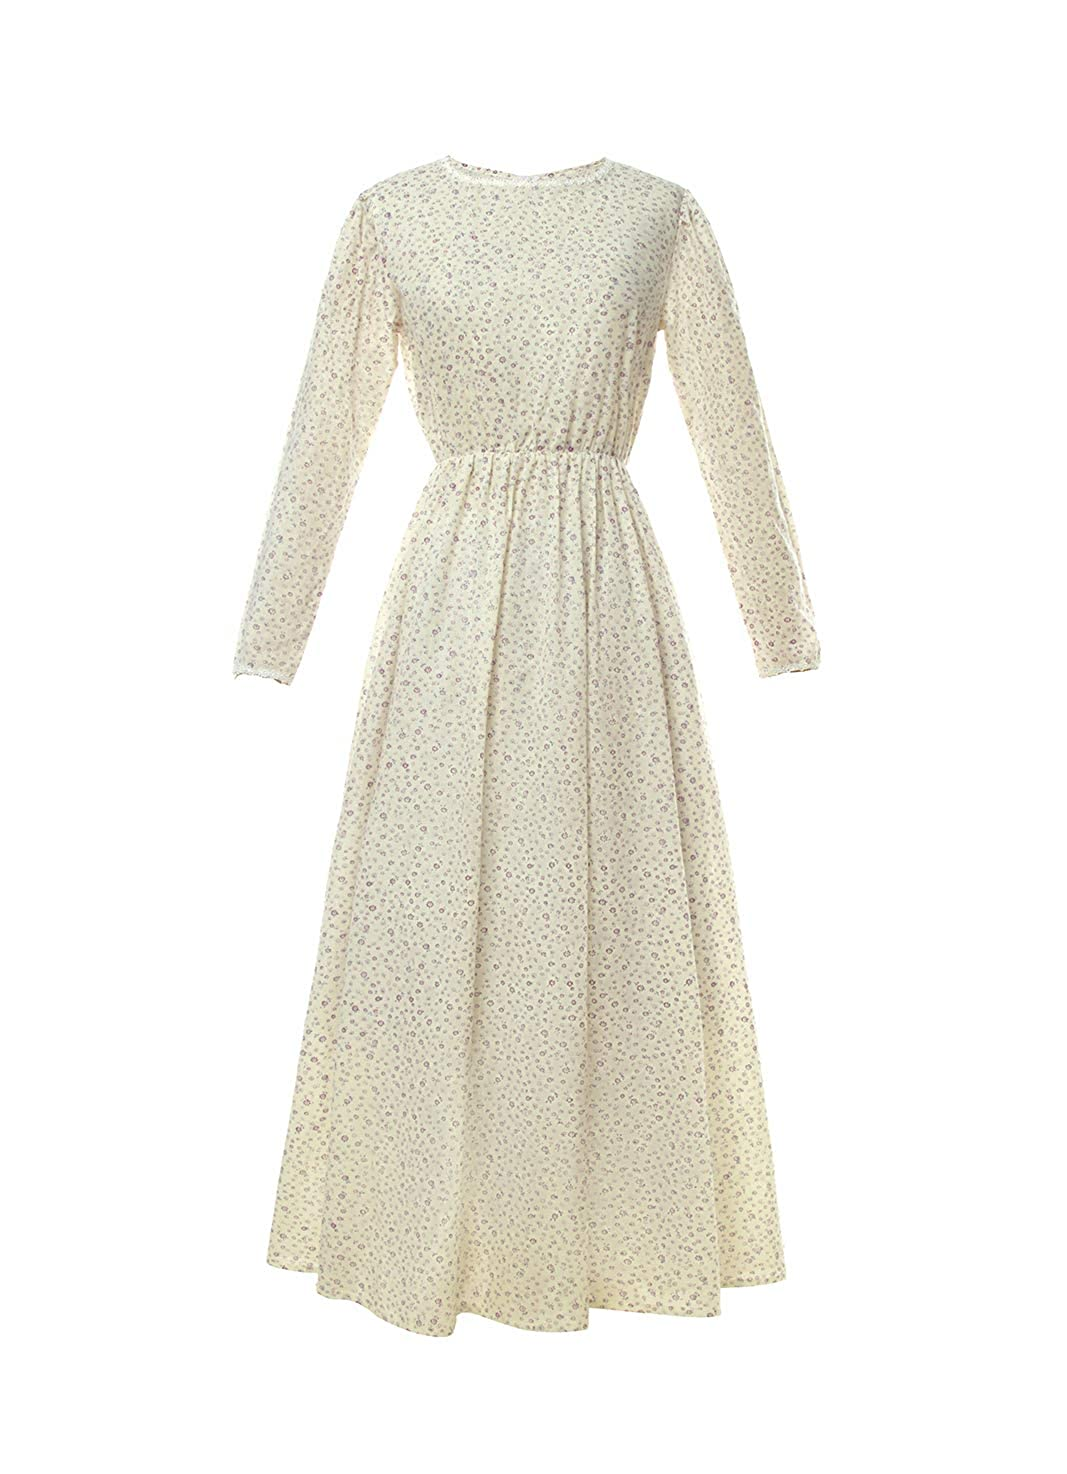 Hippie Dress | Long, Boho, Vintage, 70s ROLECOS Pioneer Women Costume Floral Prairie Dress Deluxe Colonial Dress Laura Ingalls Costume $31.99 AT vintagedancer.com